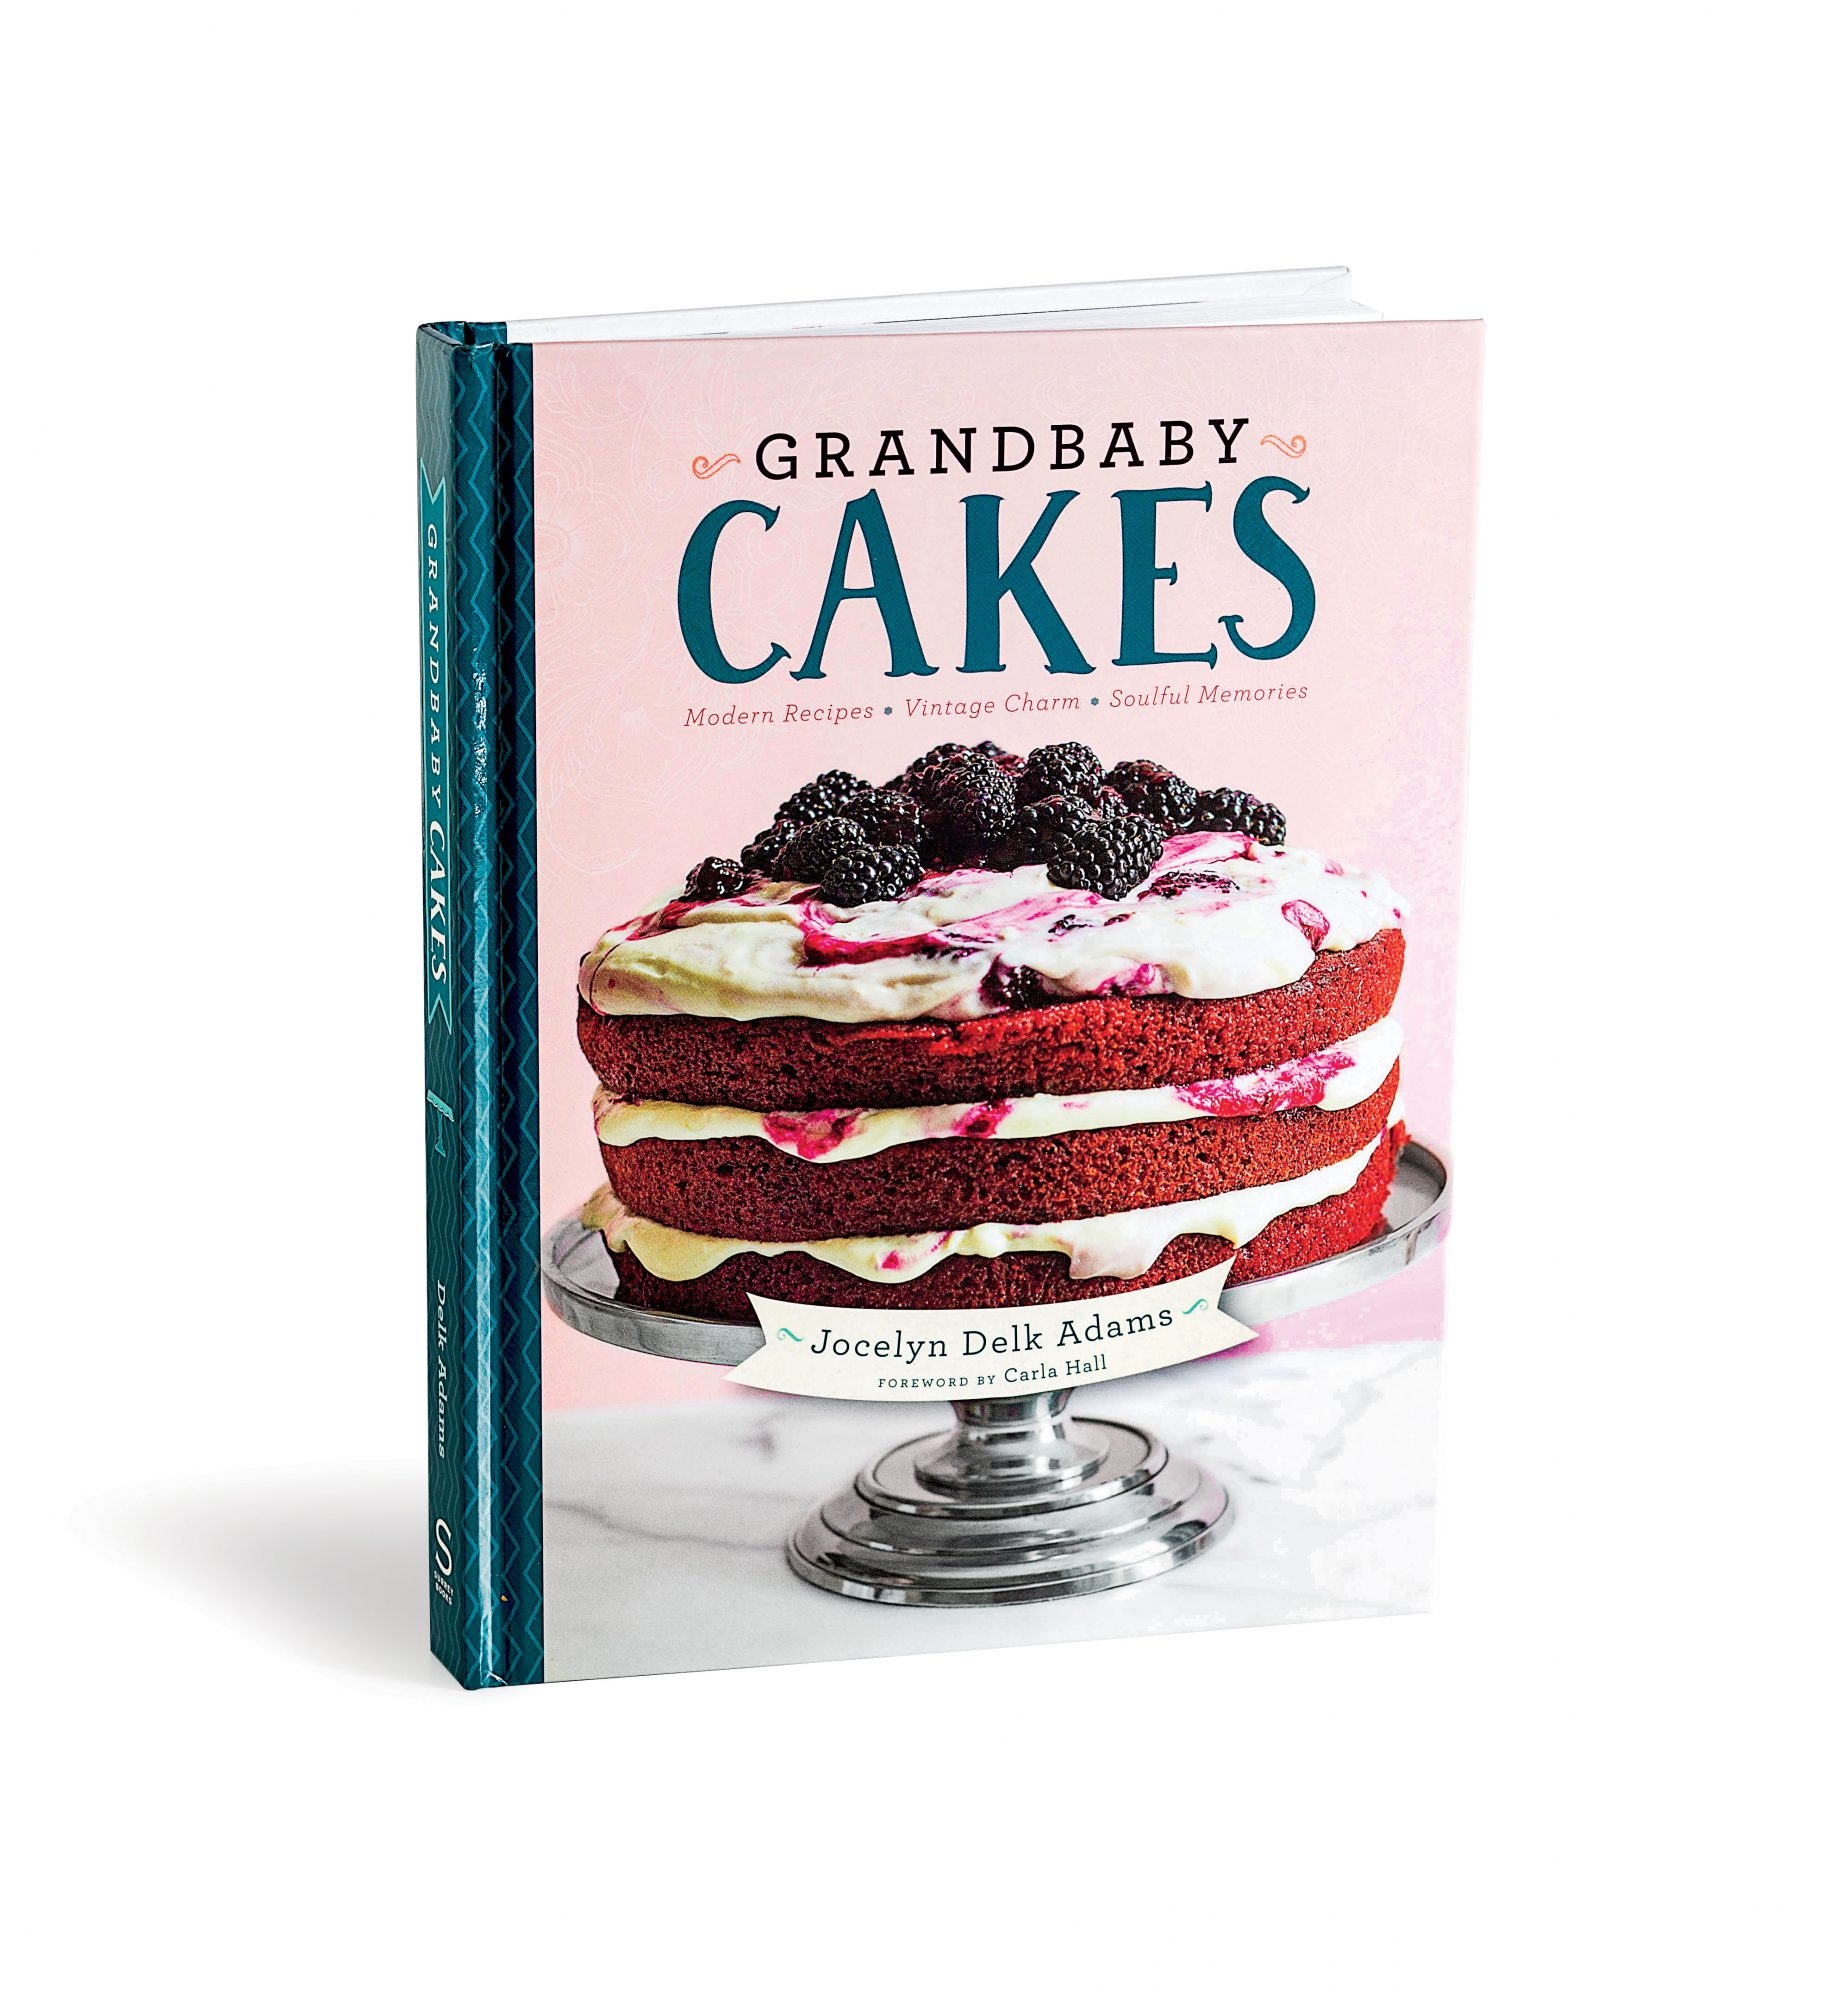 Grandbaby Cakes by Jocelyn Delk Adams